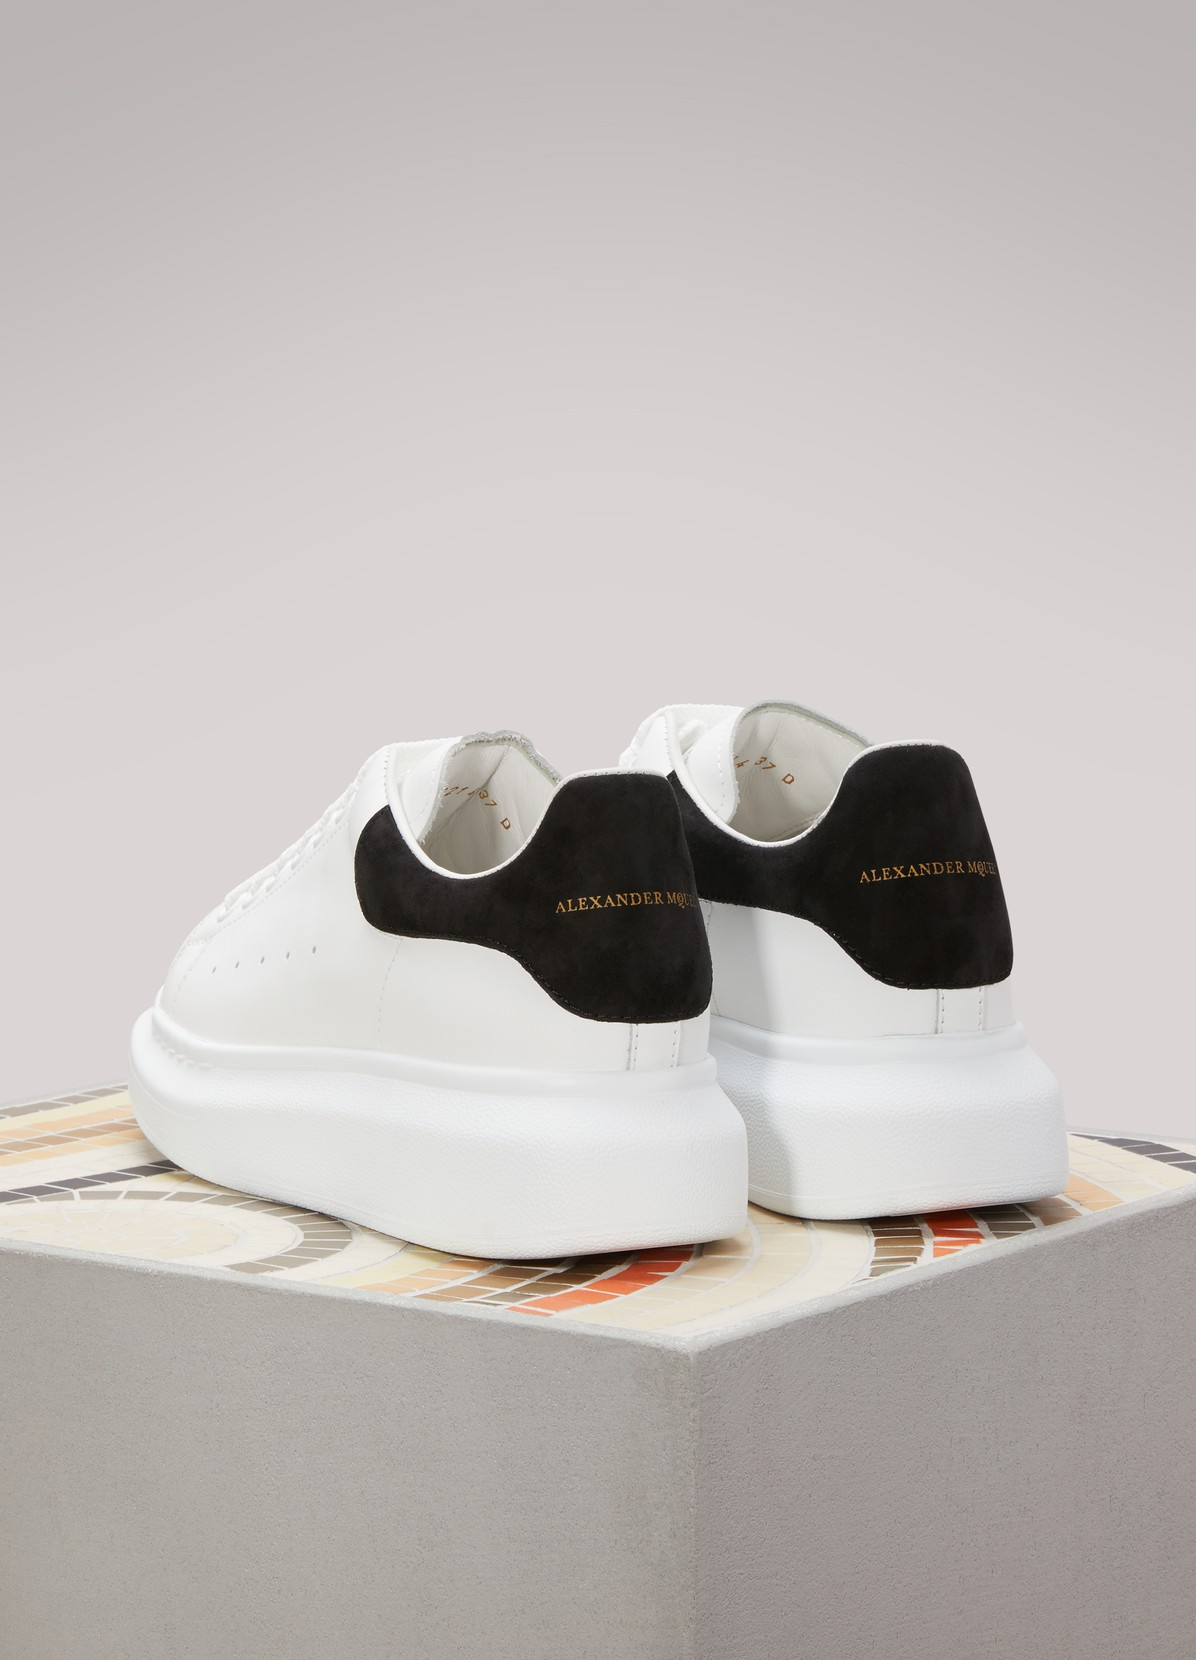 Suede Detail Leather Sneakers Alexander Mcqueen 24 S 232 Vres